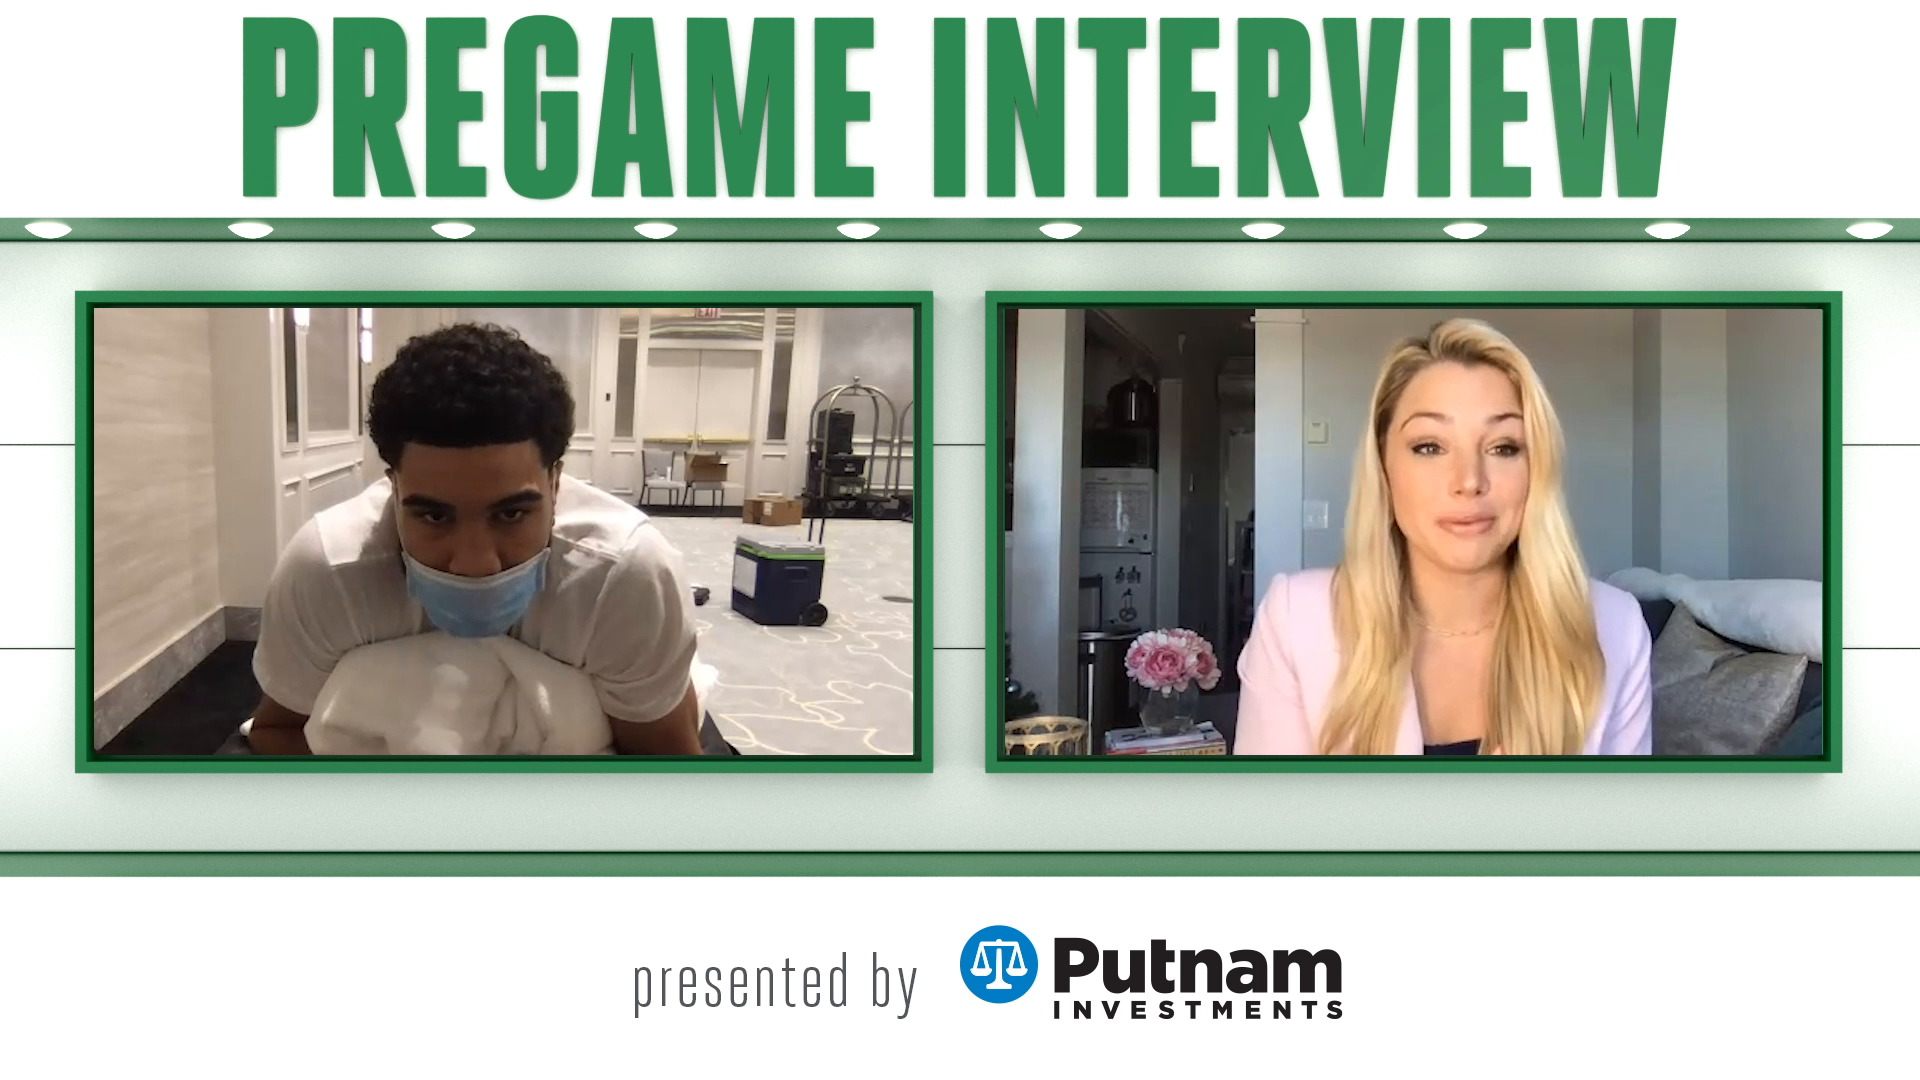 1/25 Putnam Pregame Interview: 'It Was Scary'